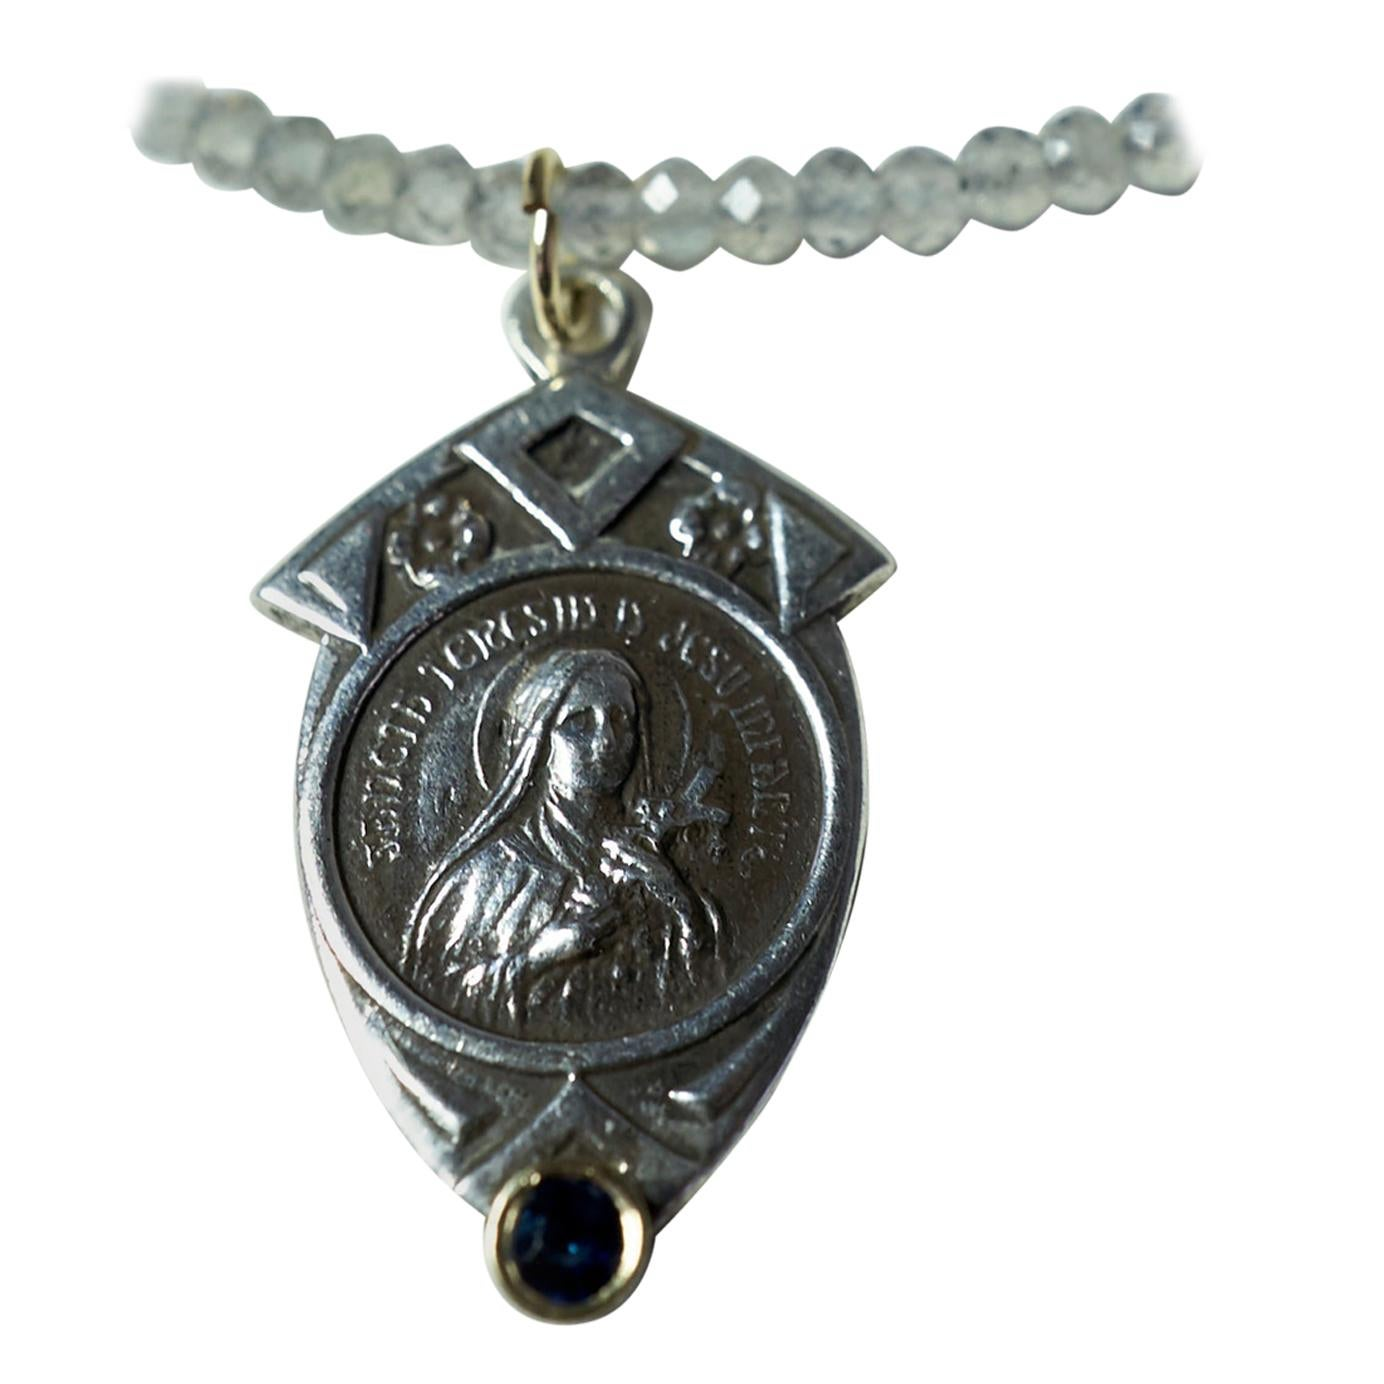 Sapphire Virgin Mary Medal Coin Pendant Labradorite Chain Necklace J Dauphin